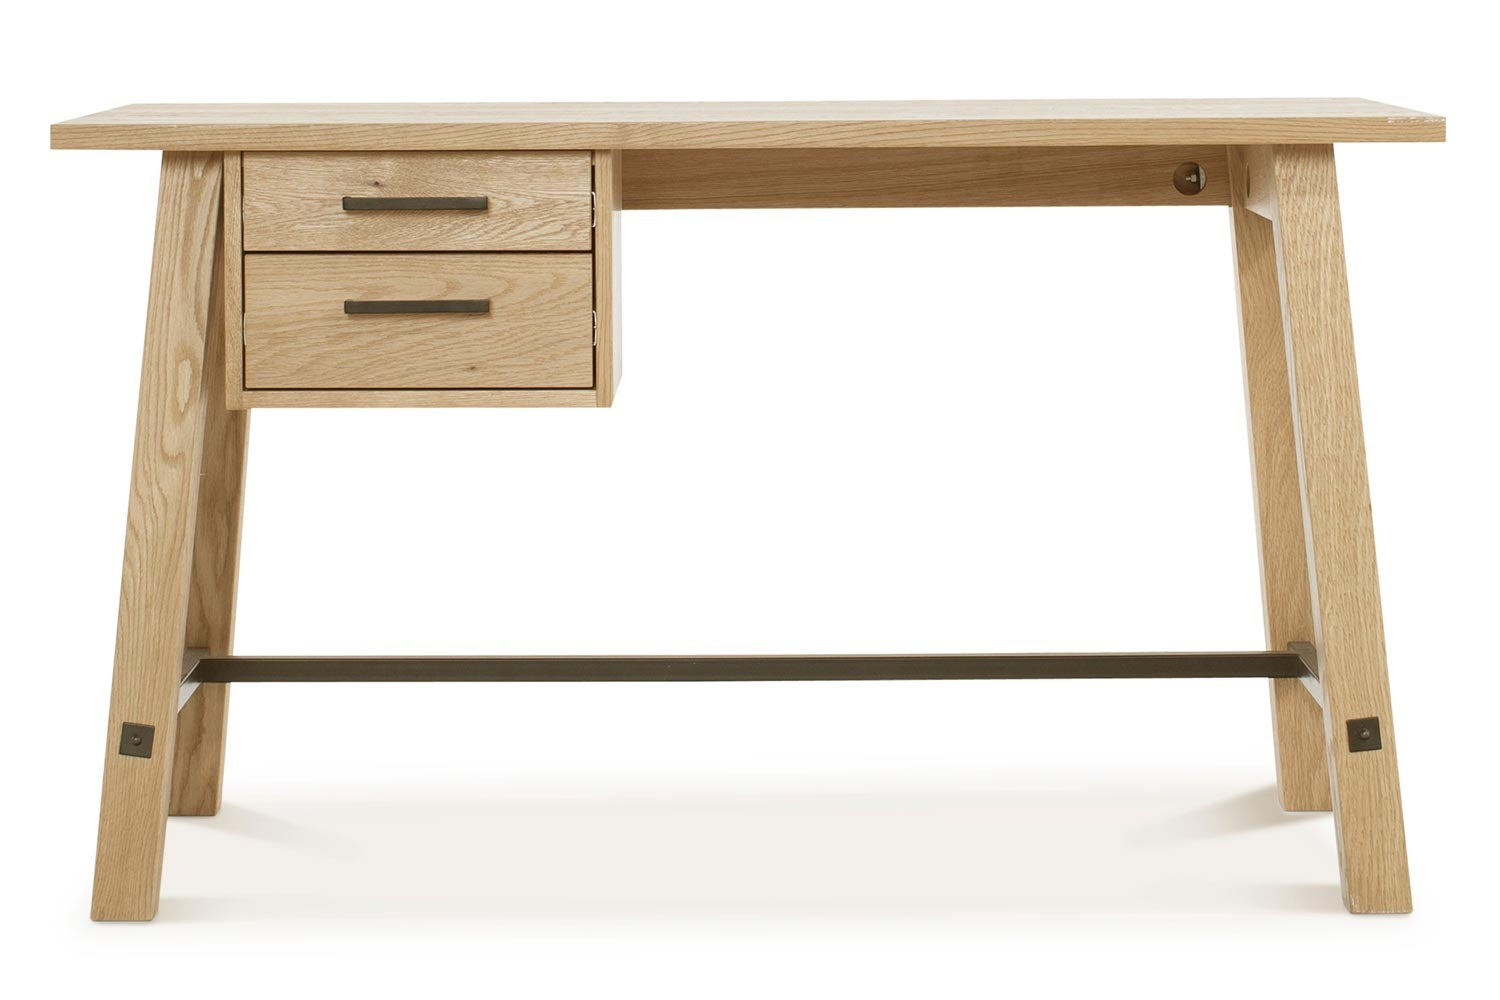 Partner Desks For Sale In Ireland Walnut Credenza With